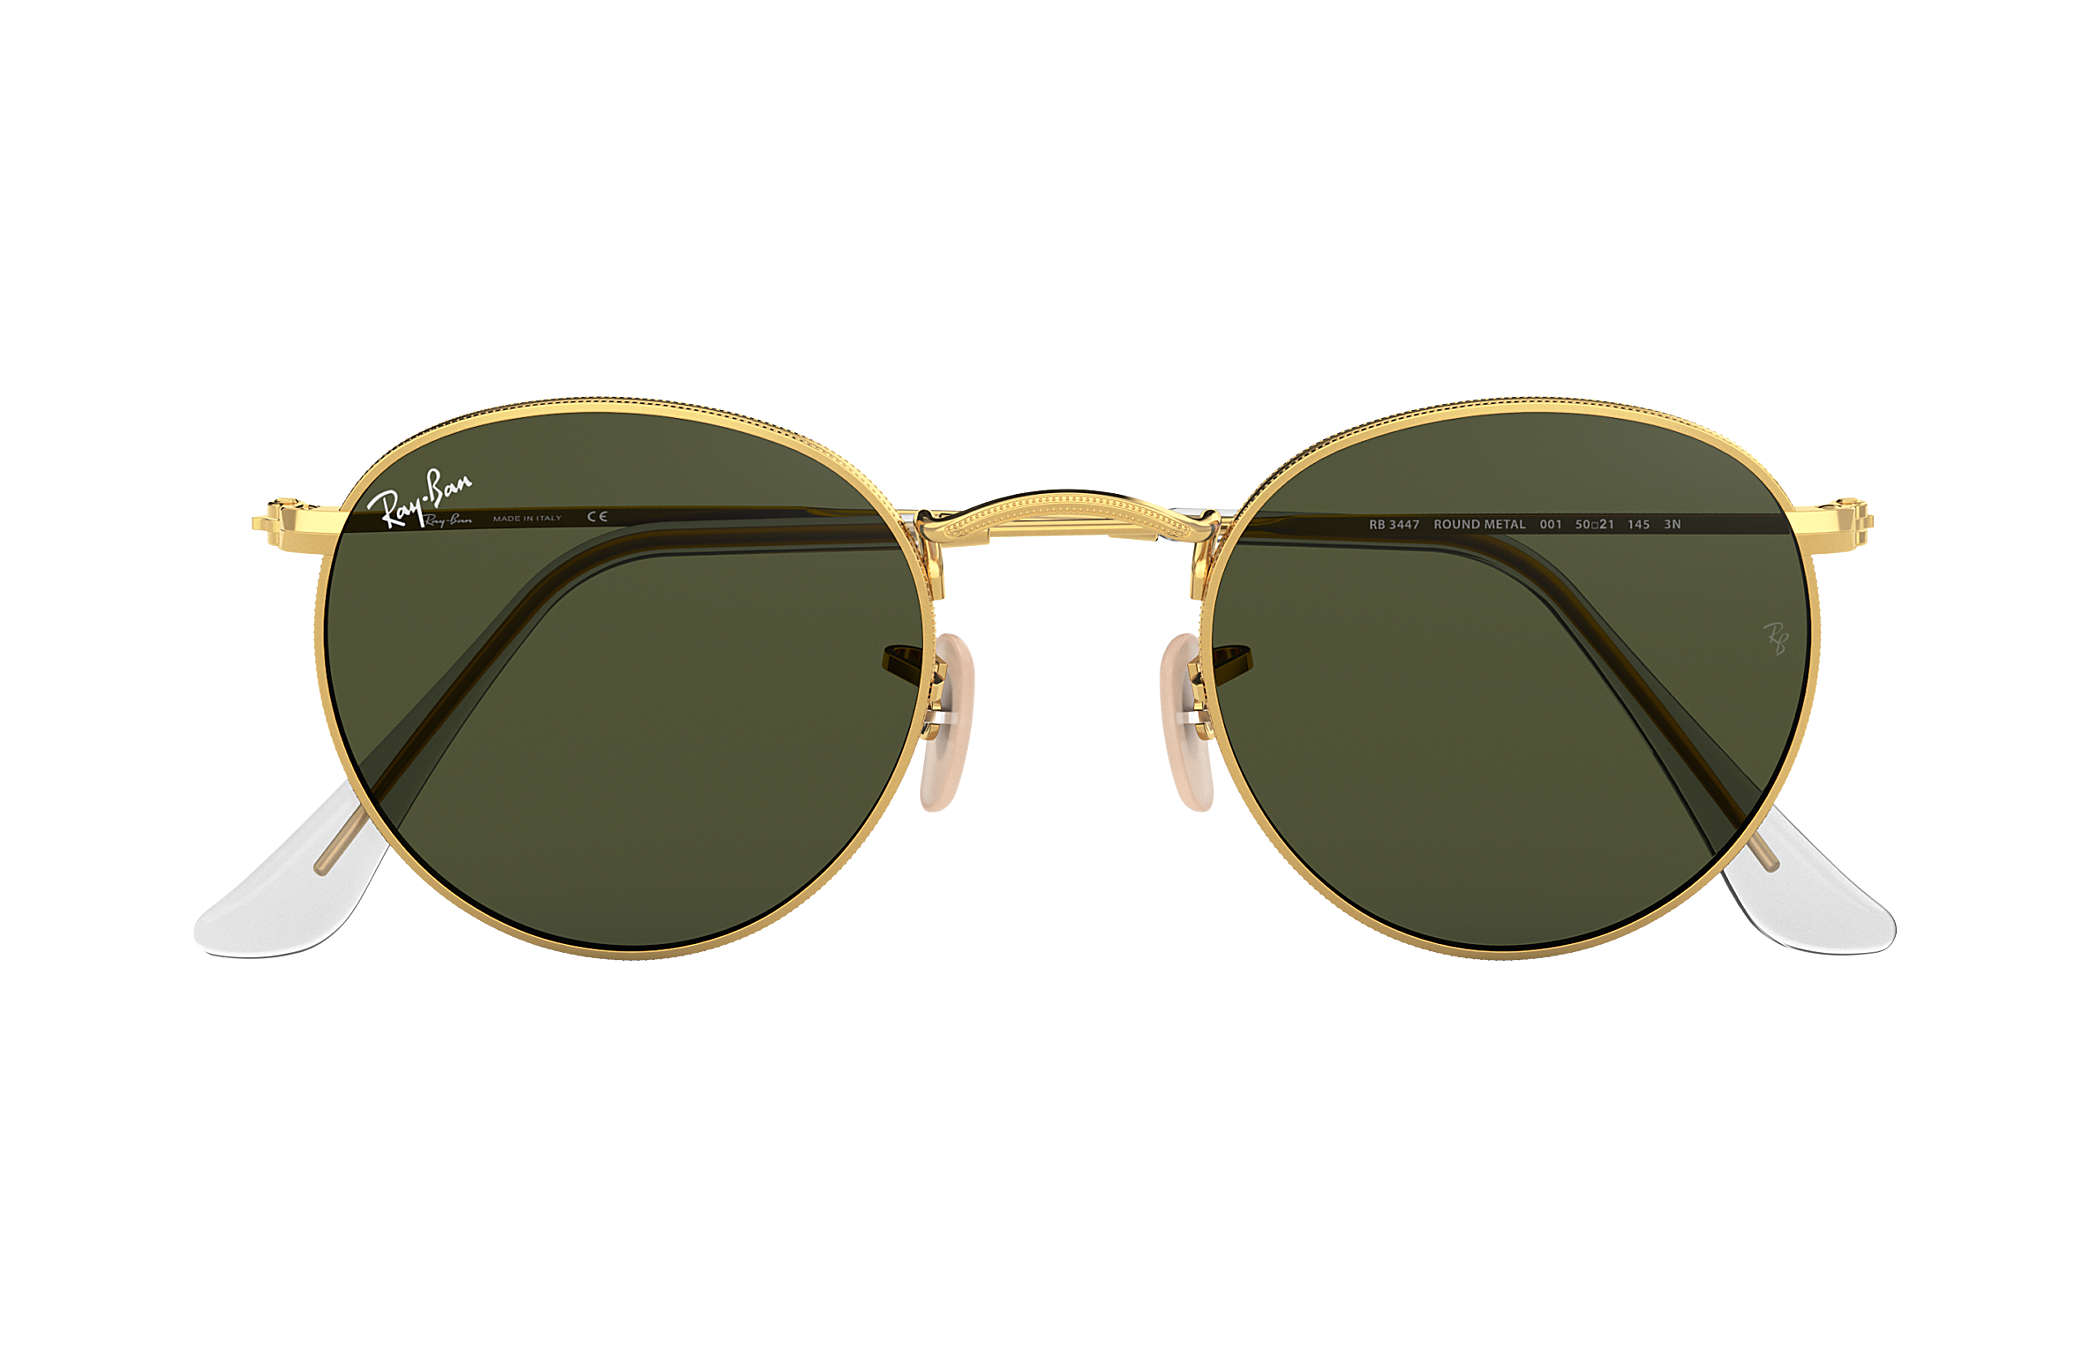 ee71fb6d32 Ray-Ban Round Metal RB3447 Gold - Metal - Green Lenses ...